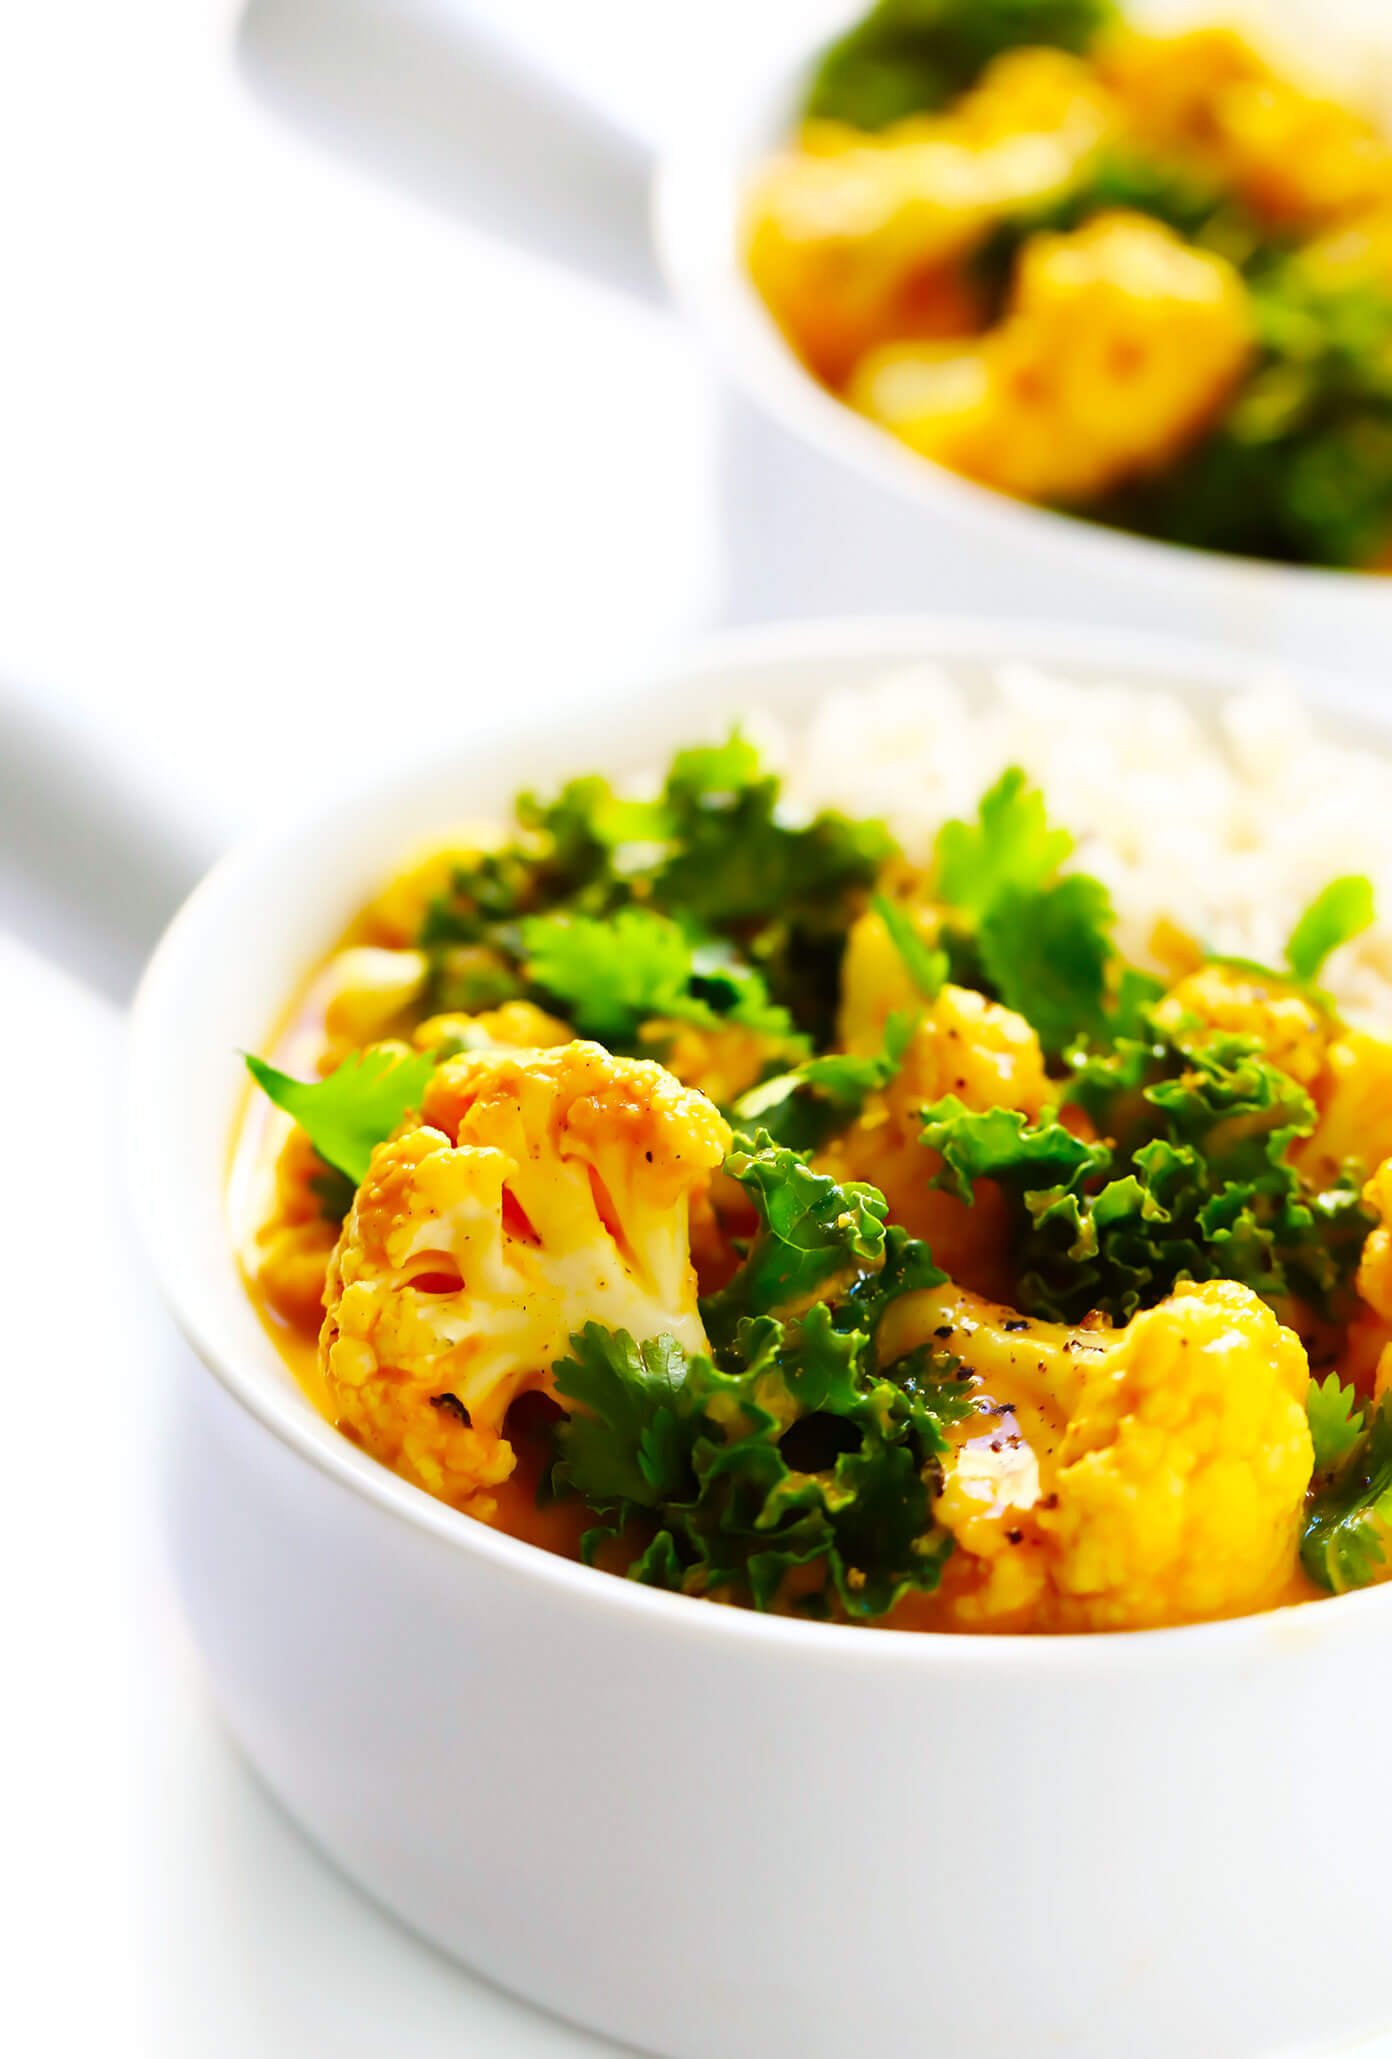 Vegetarian Curry Recipe with Cauliflower and Kale